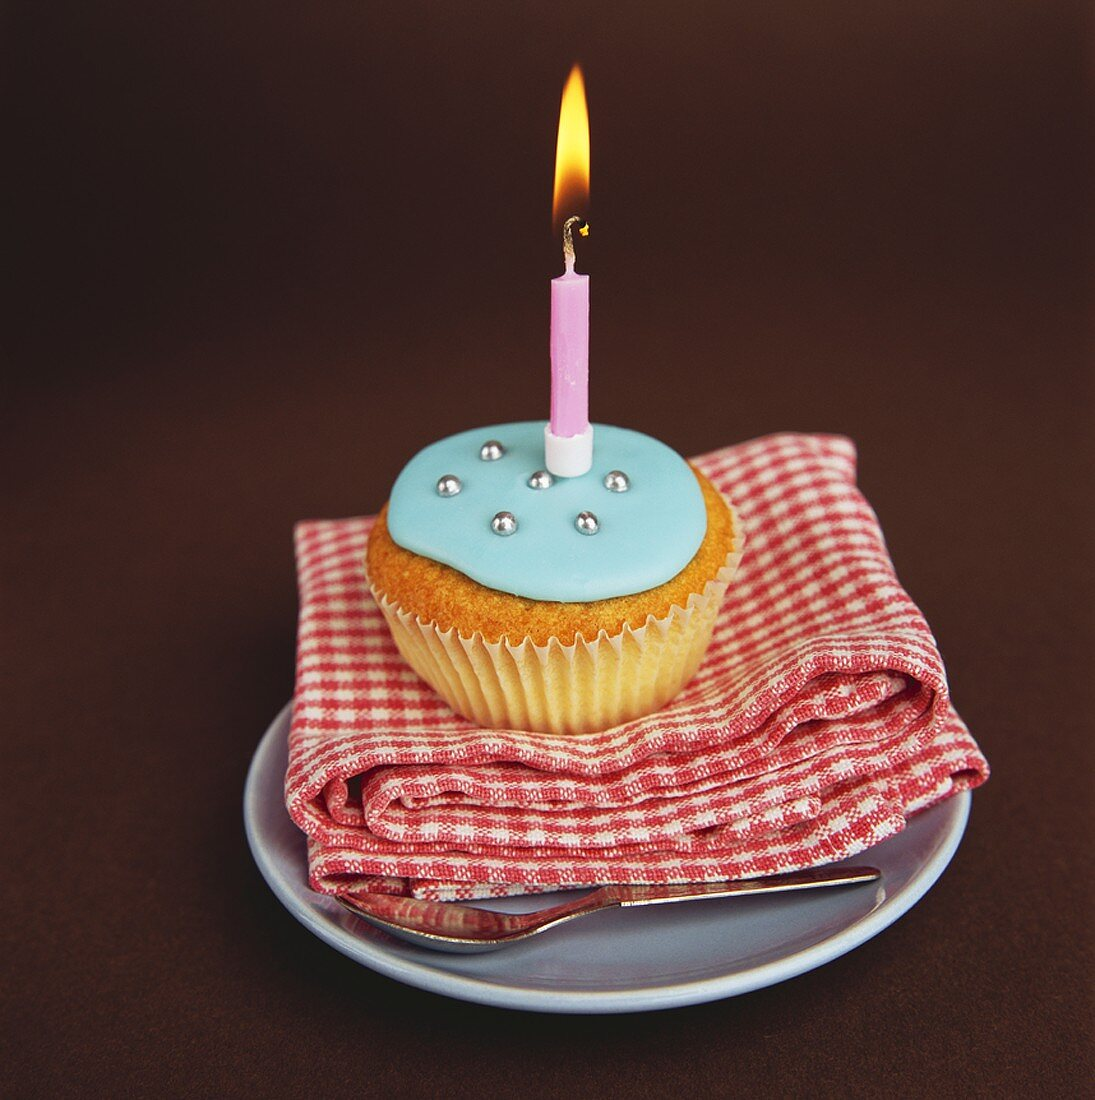 Cupcake with blue icing and a candle